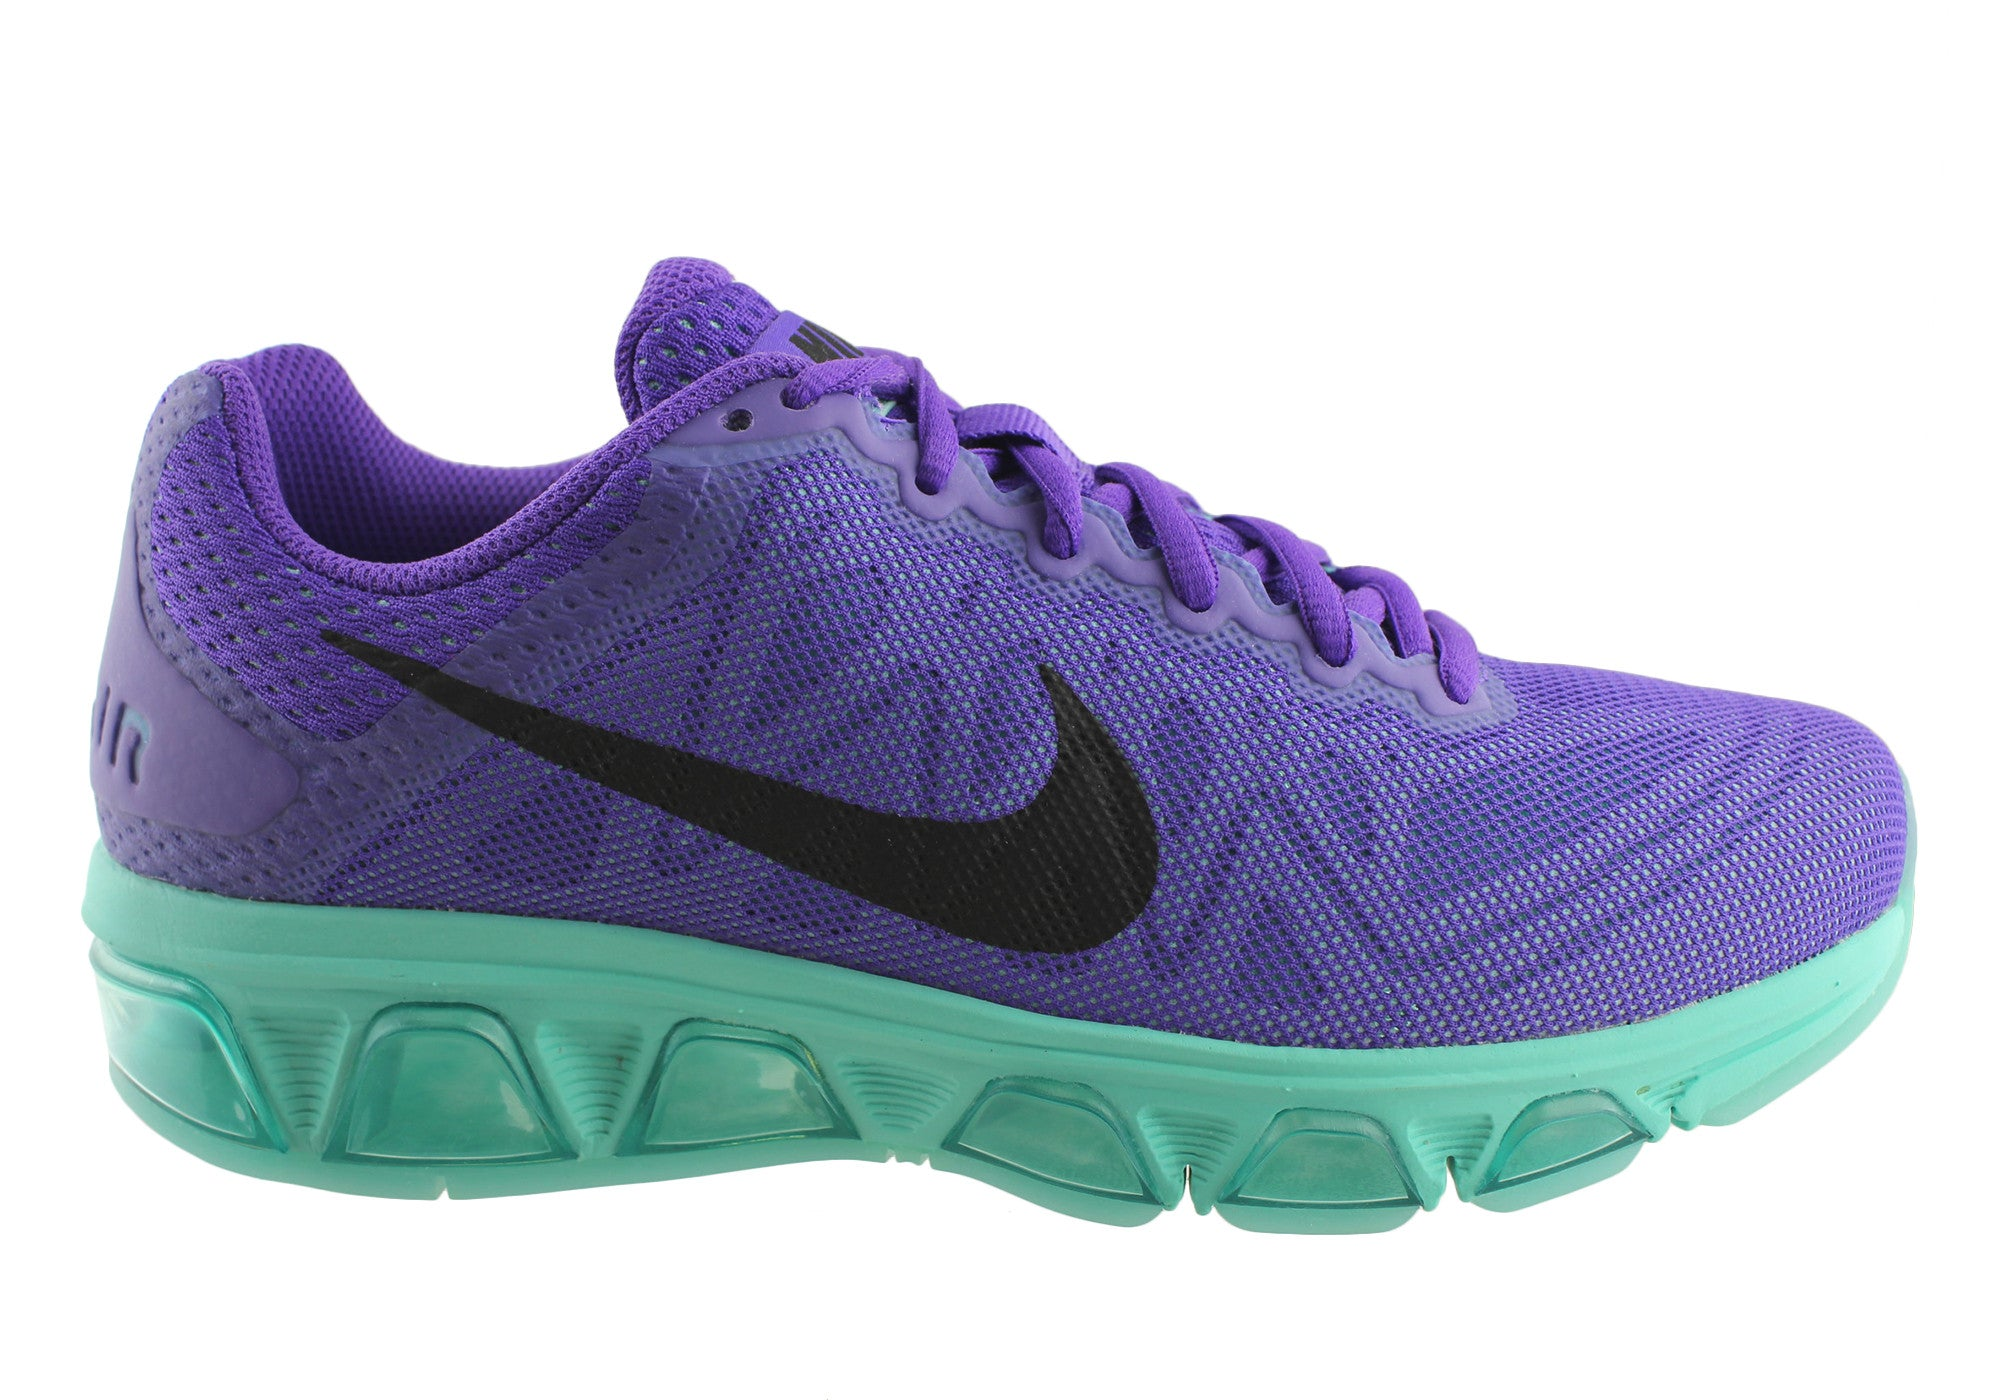 cheap for discount 98e1d 44c34 Home Nike Air Max Tailwind 7 Womens Cushioned Running Shoes. Purple  ...